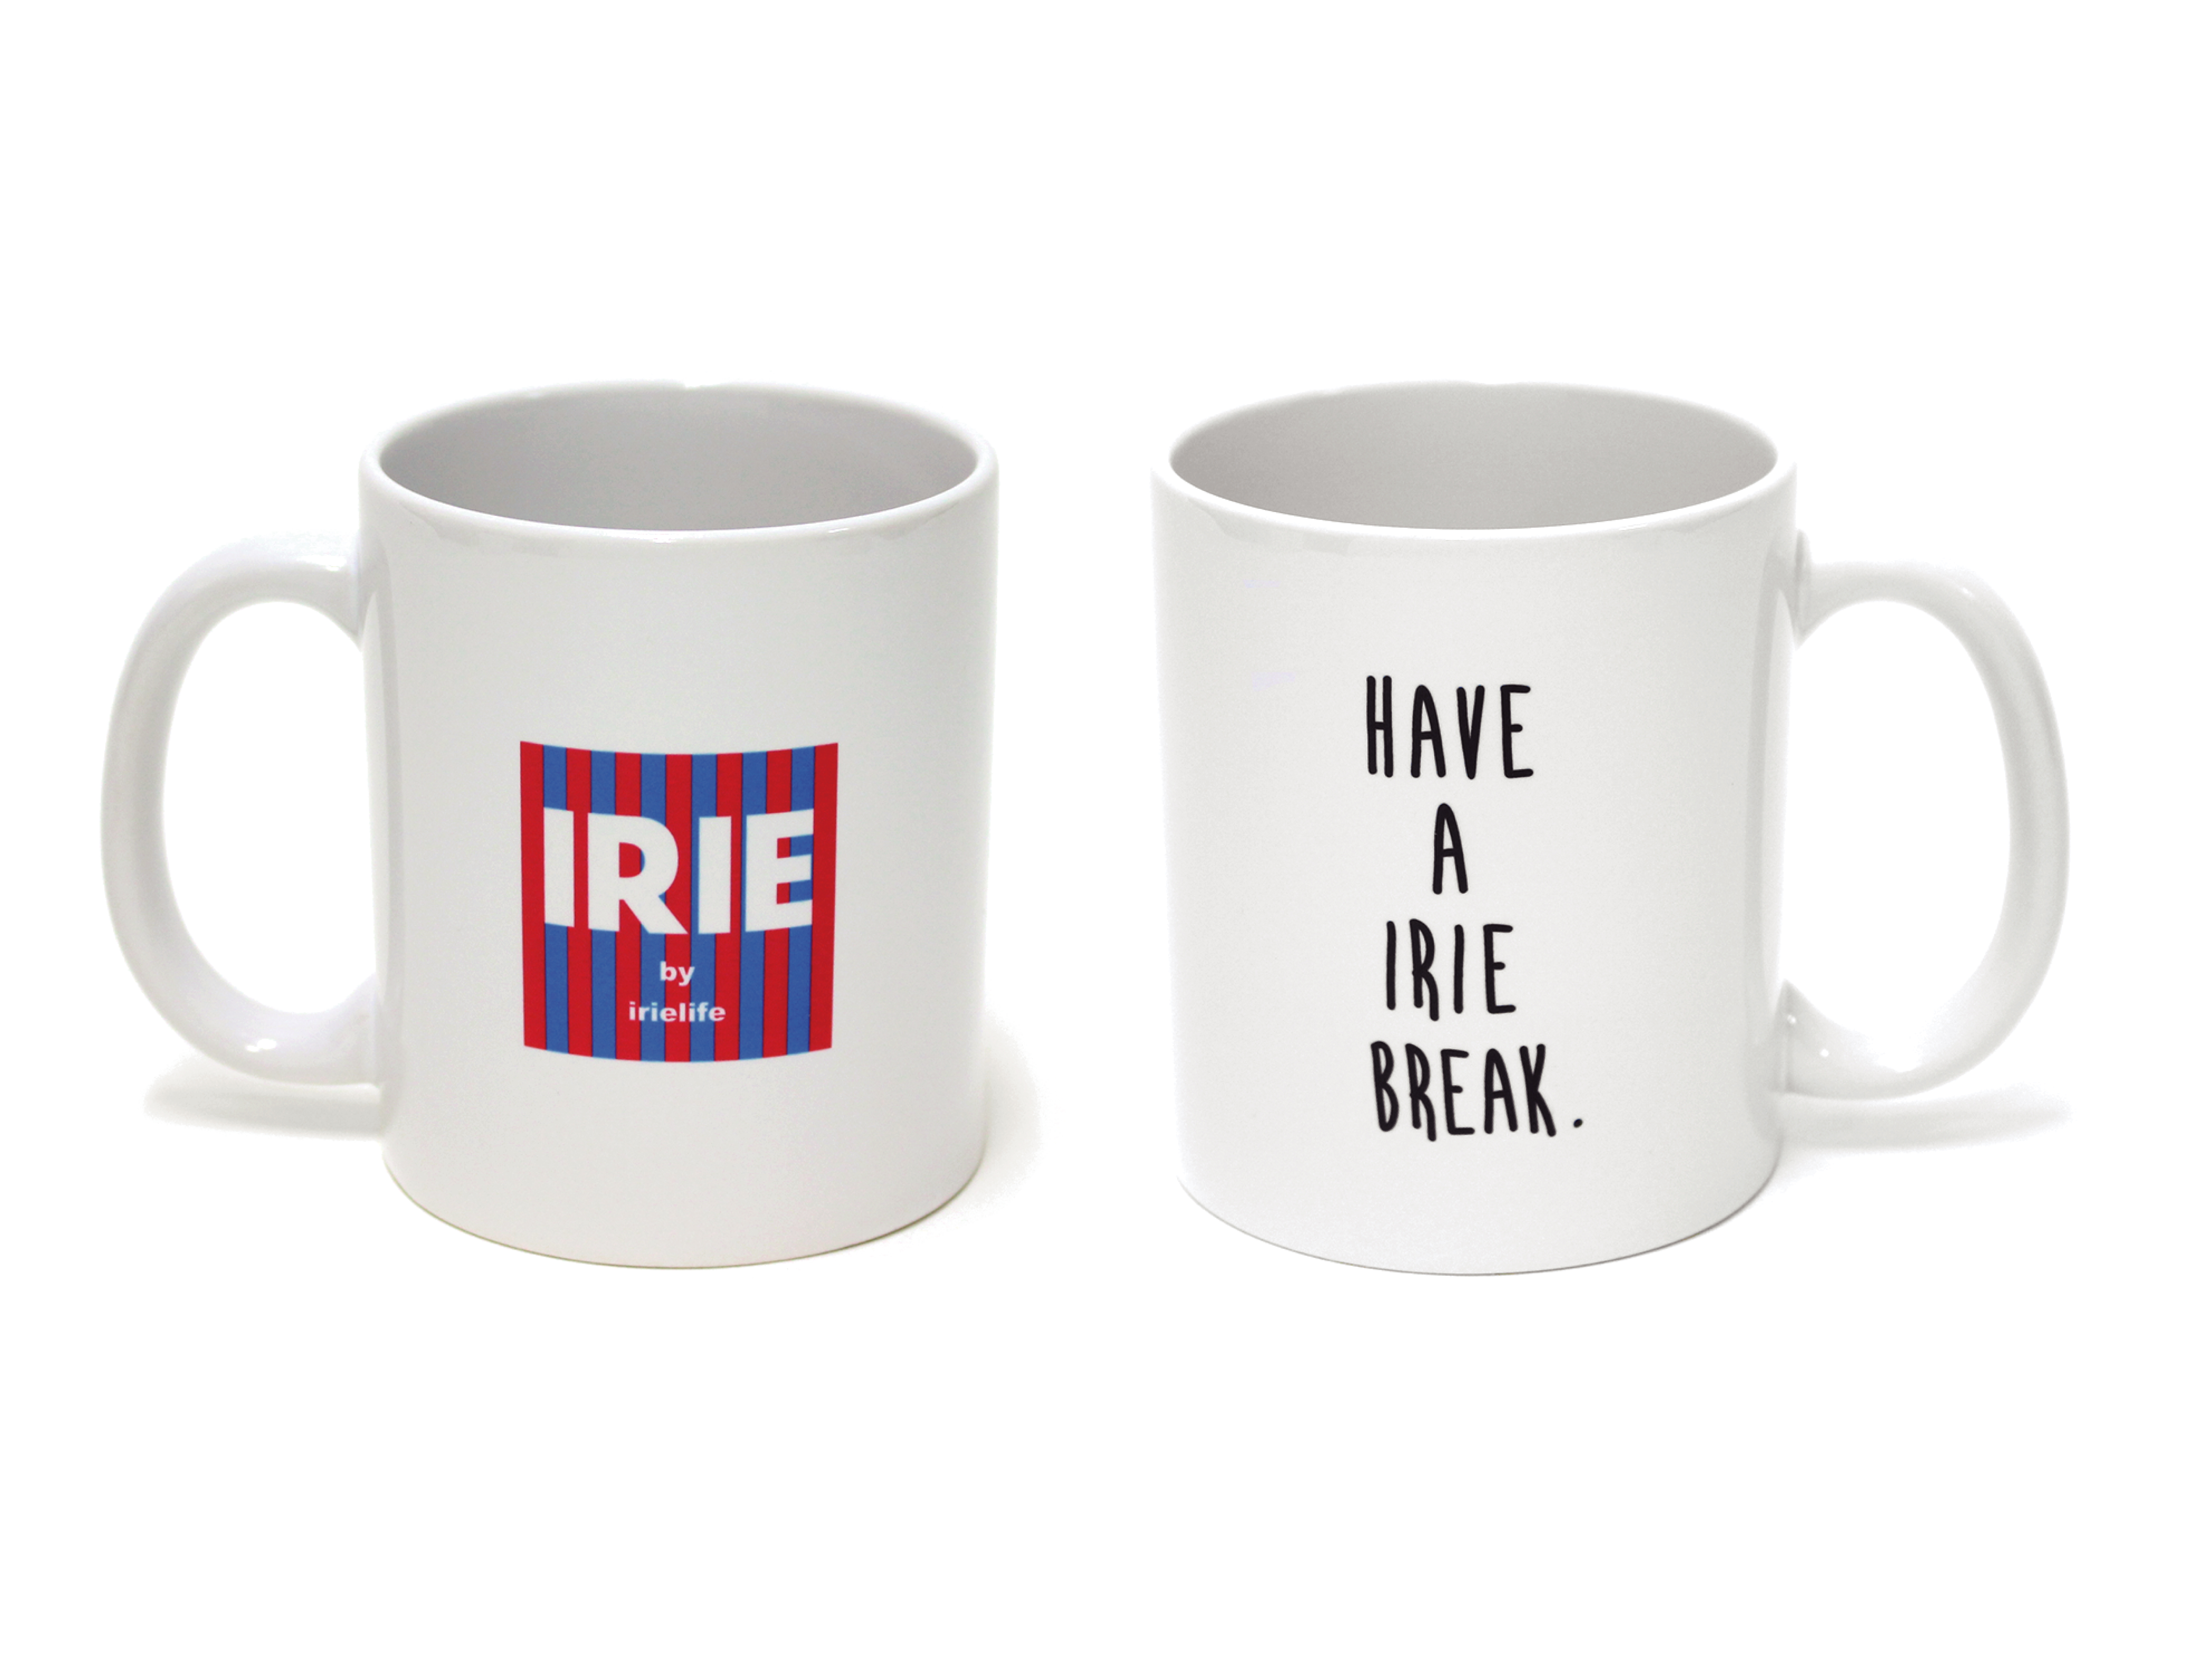 IRIE MAG CUP - IRIE by irielife